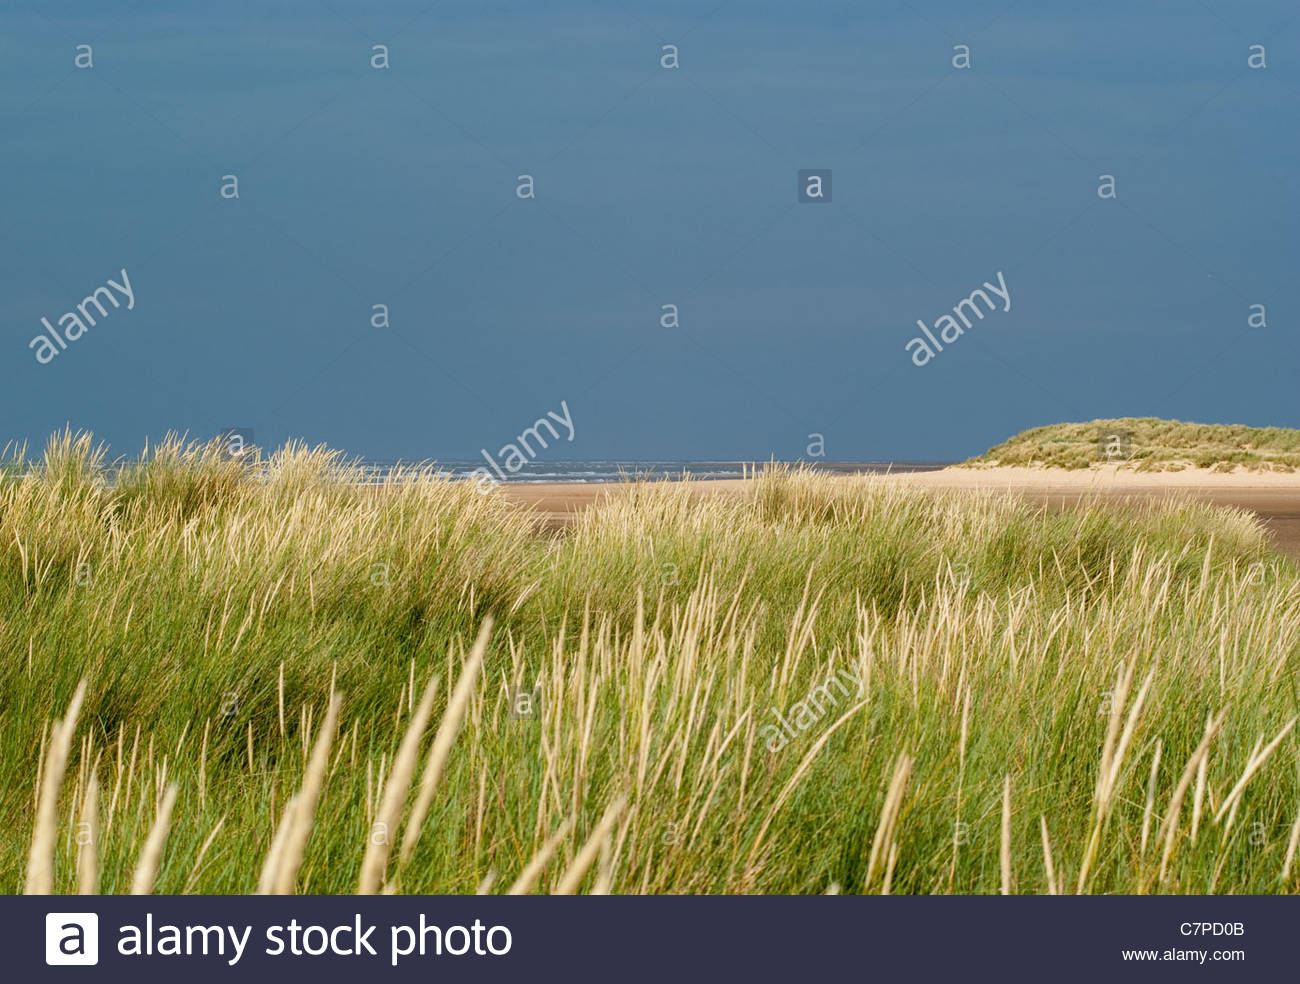 Couch and marram grasses in the sand dunes at Holkham, Norfolk, England - Stock Image